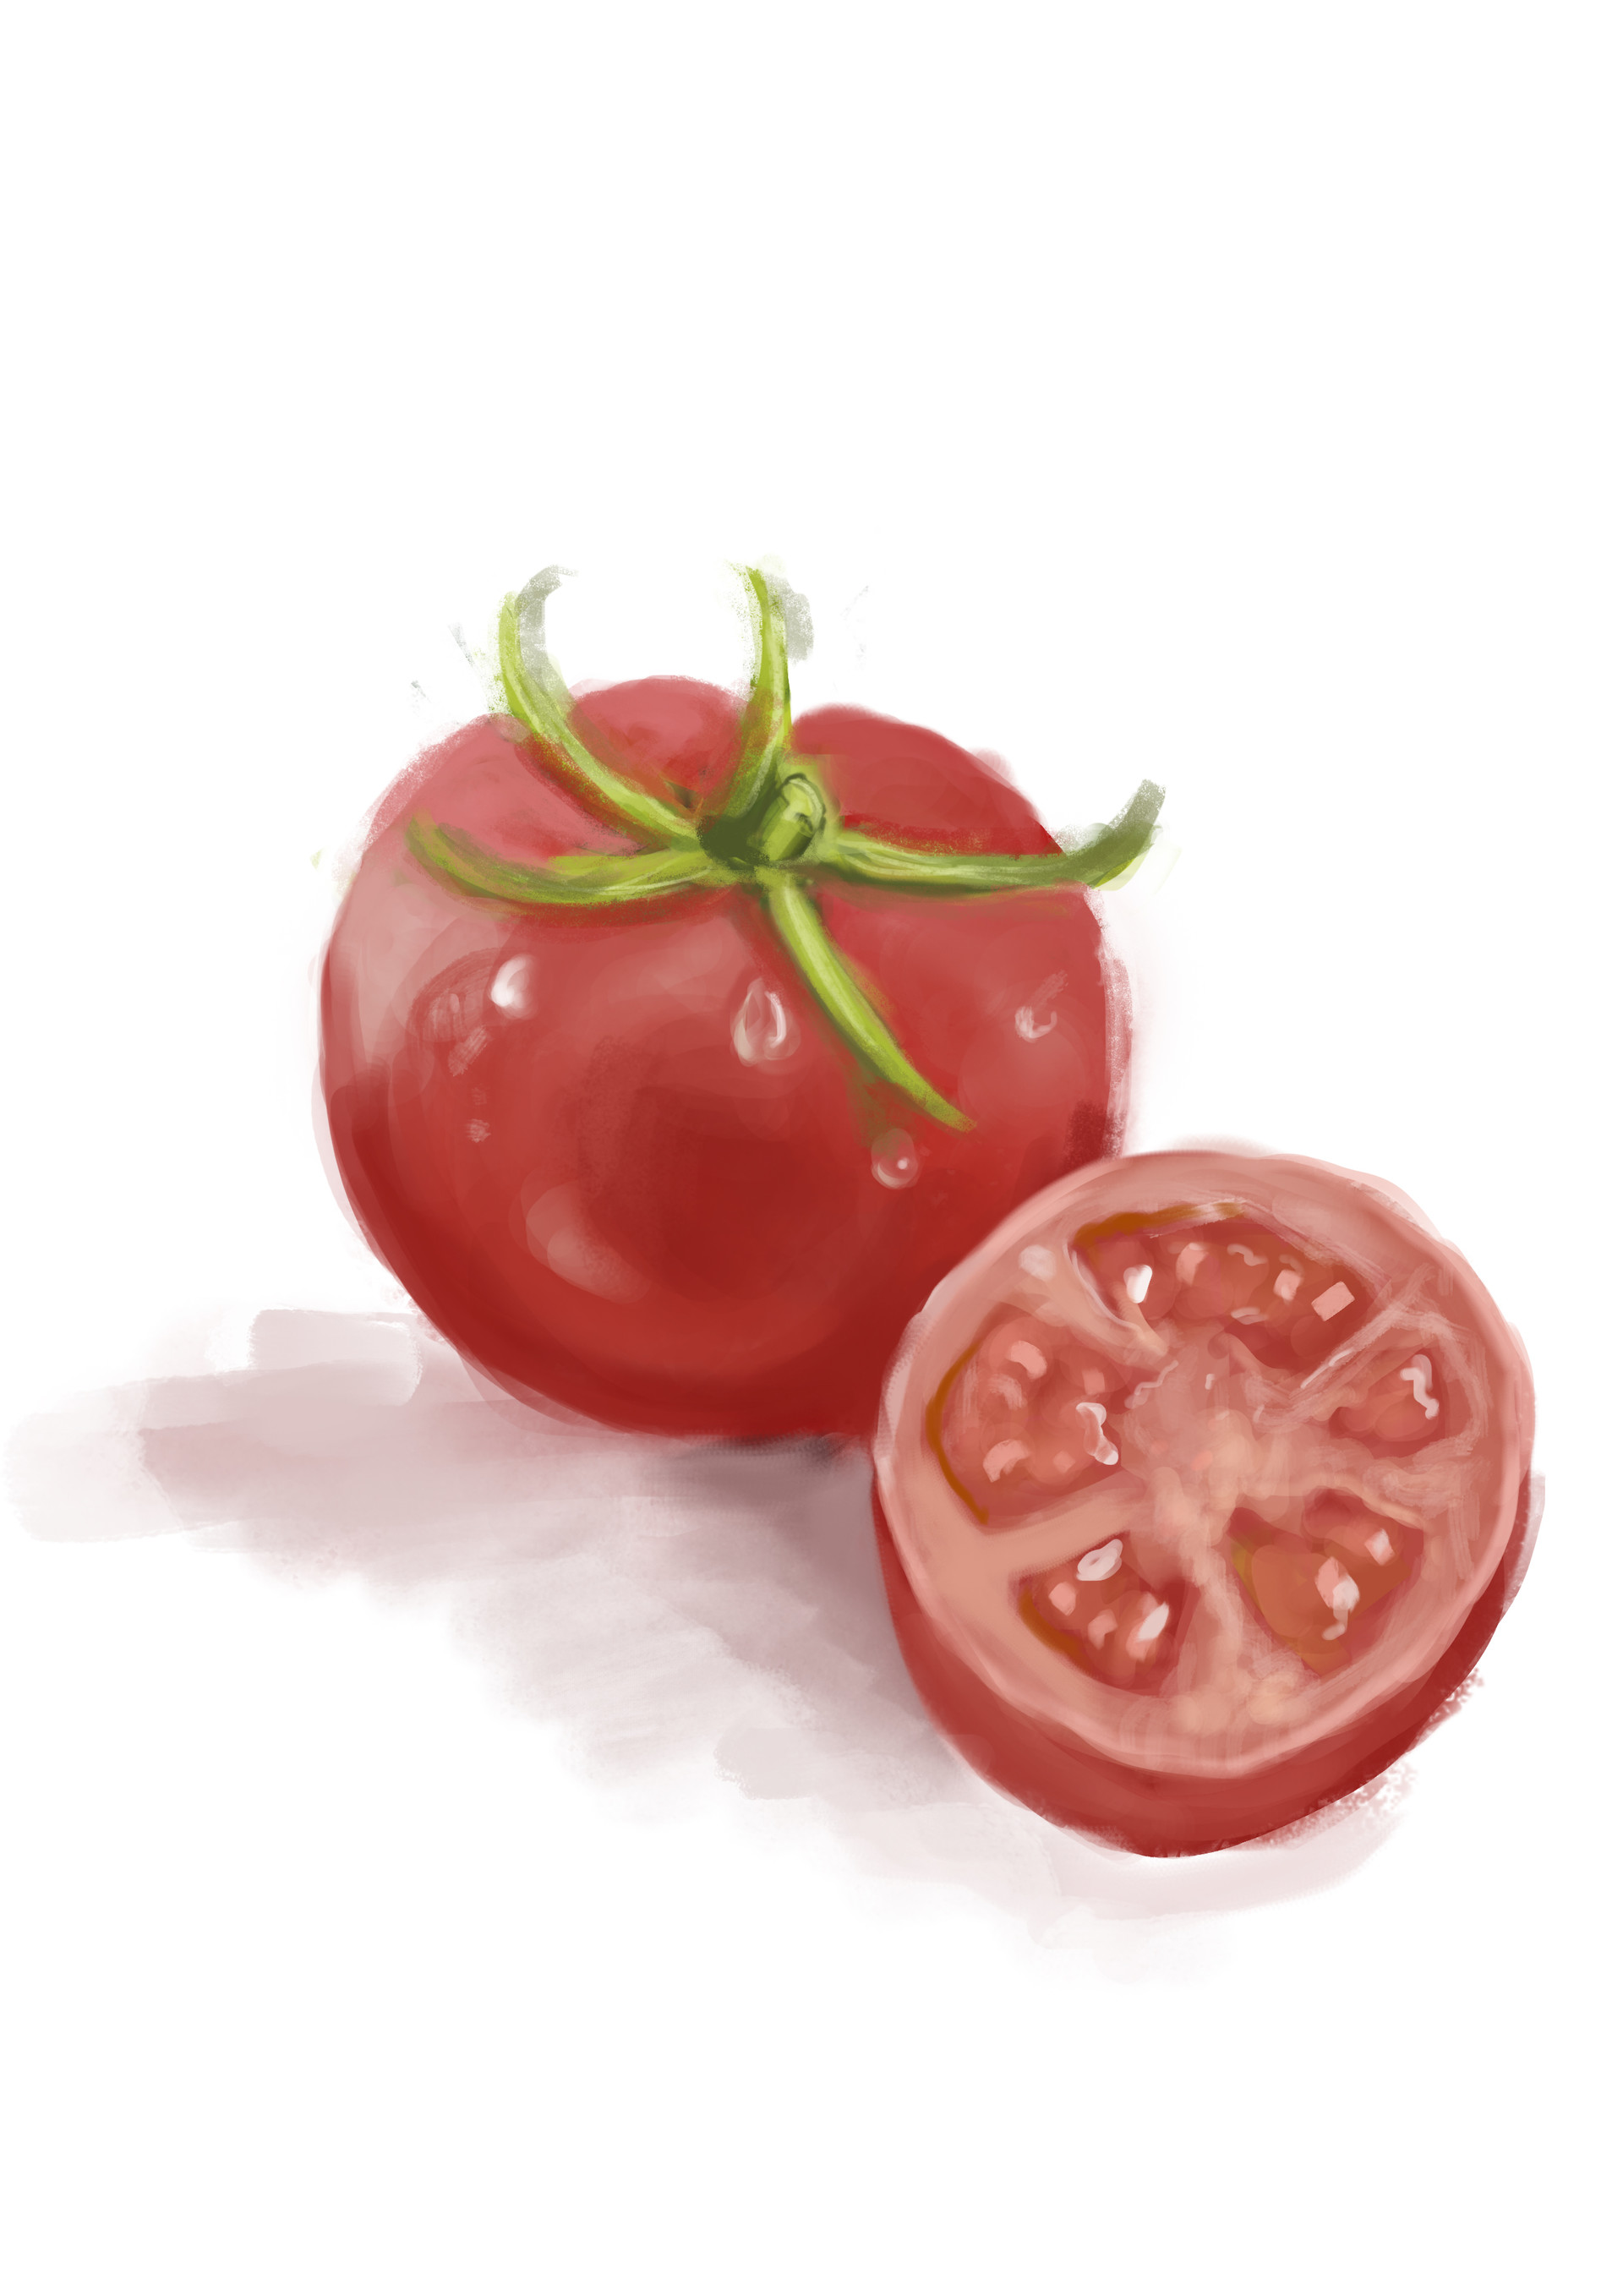 Euller pacheco verbo tomate